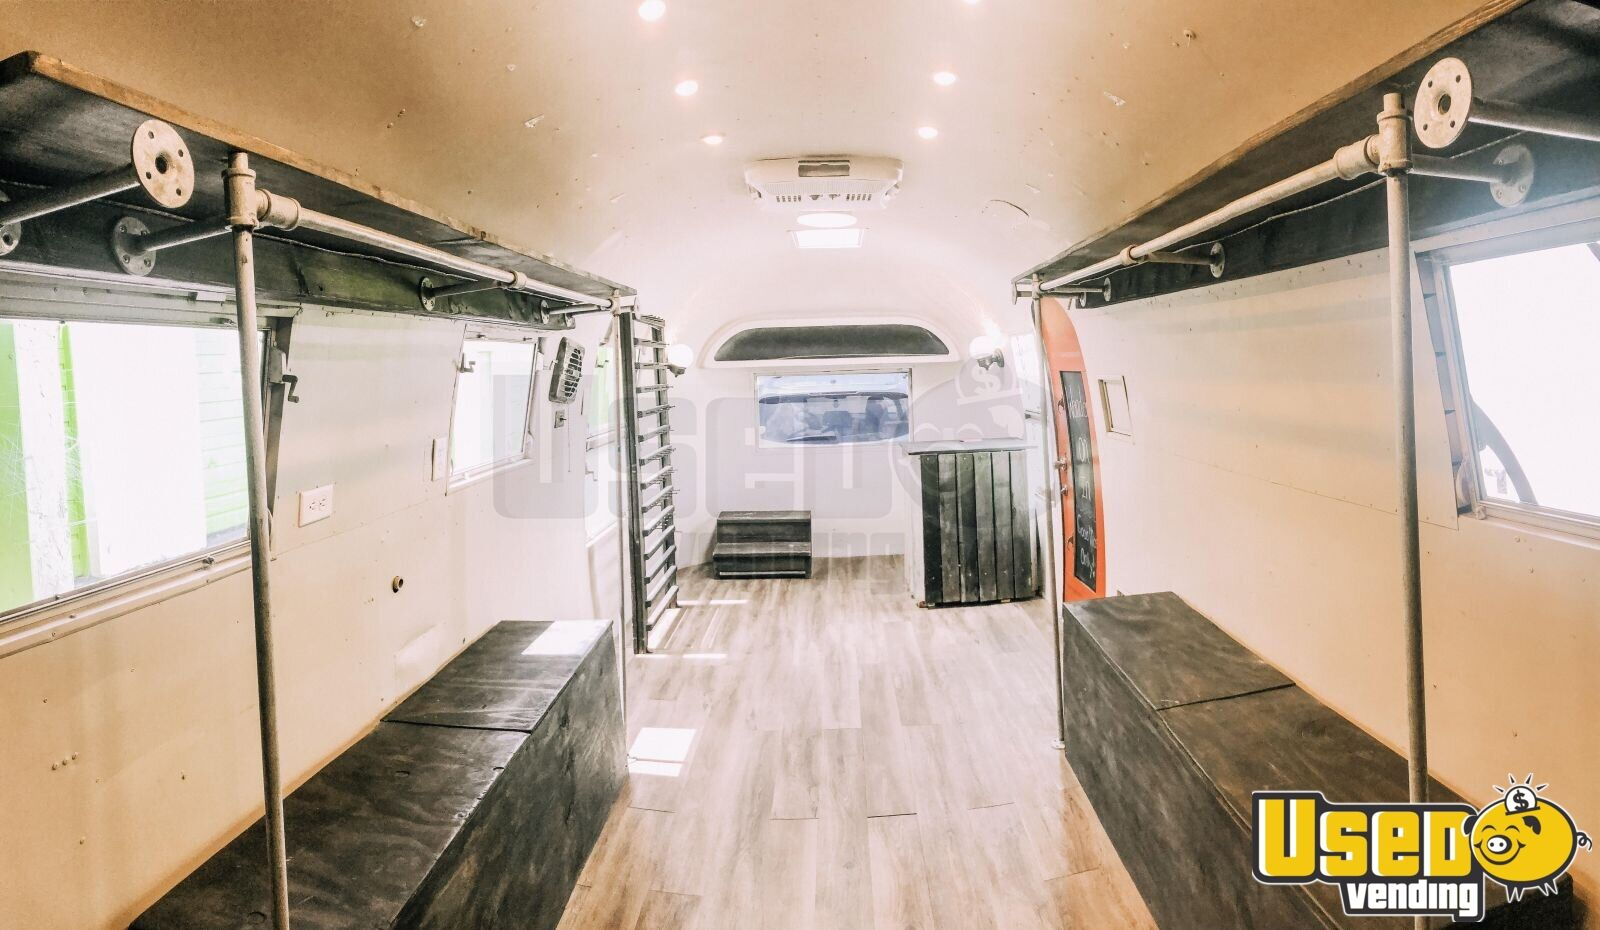 1963 Airstream Overlander Mobile Boutique Trailer Insulated Walls Florida for Sale - 4